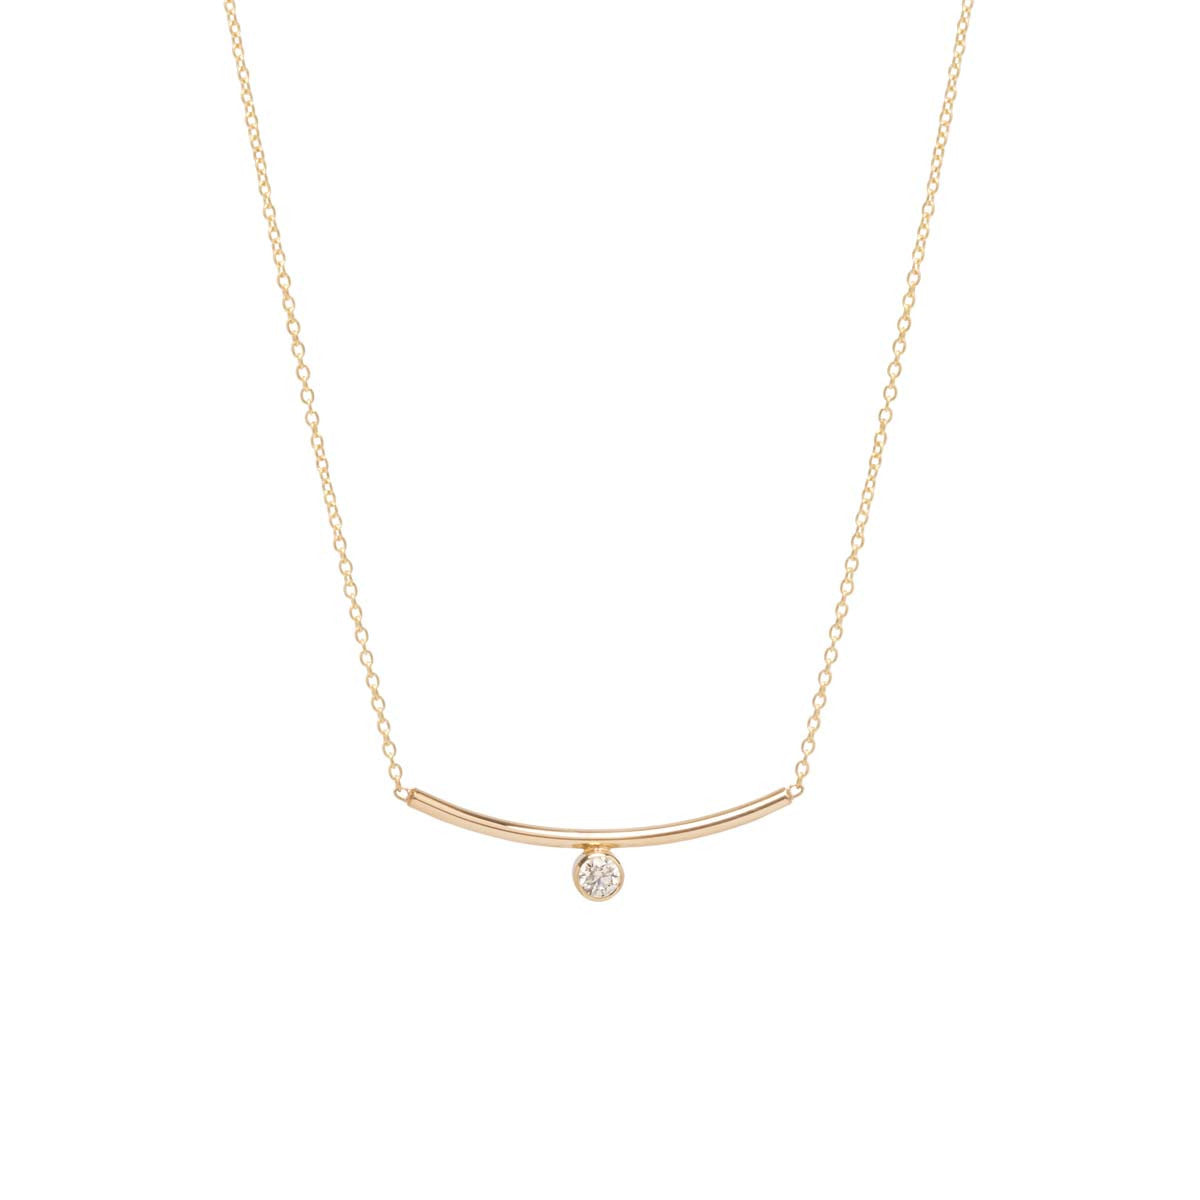 Zoë Chicco 14kt Yellow Gold Bezel Set White Diamond Curved Bar Necklace